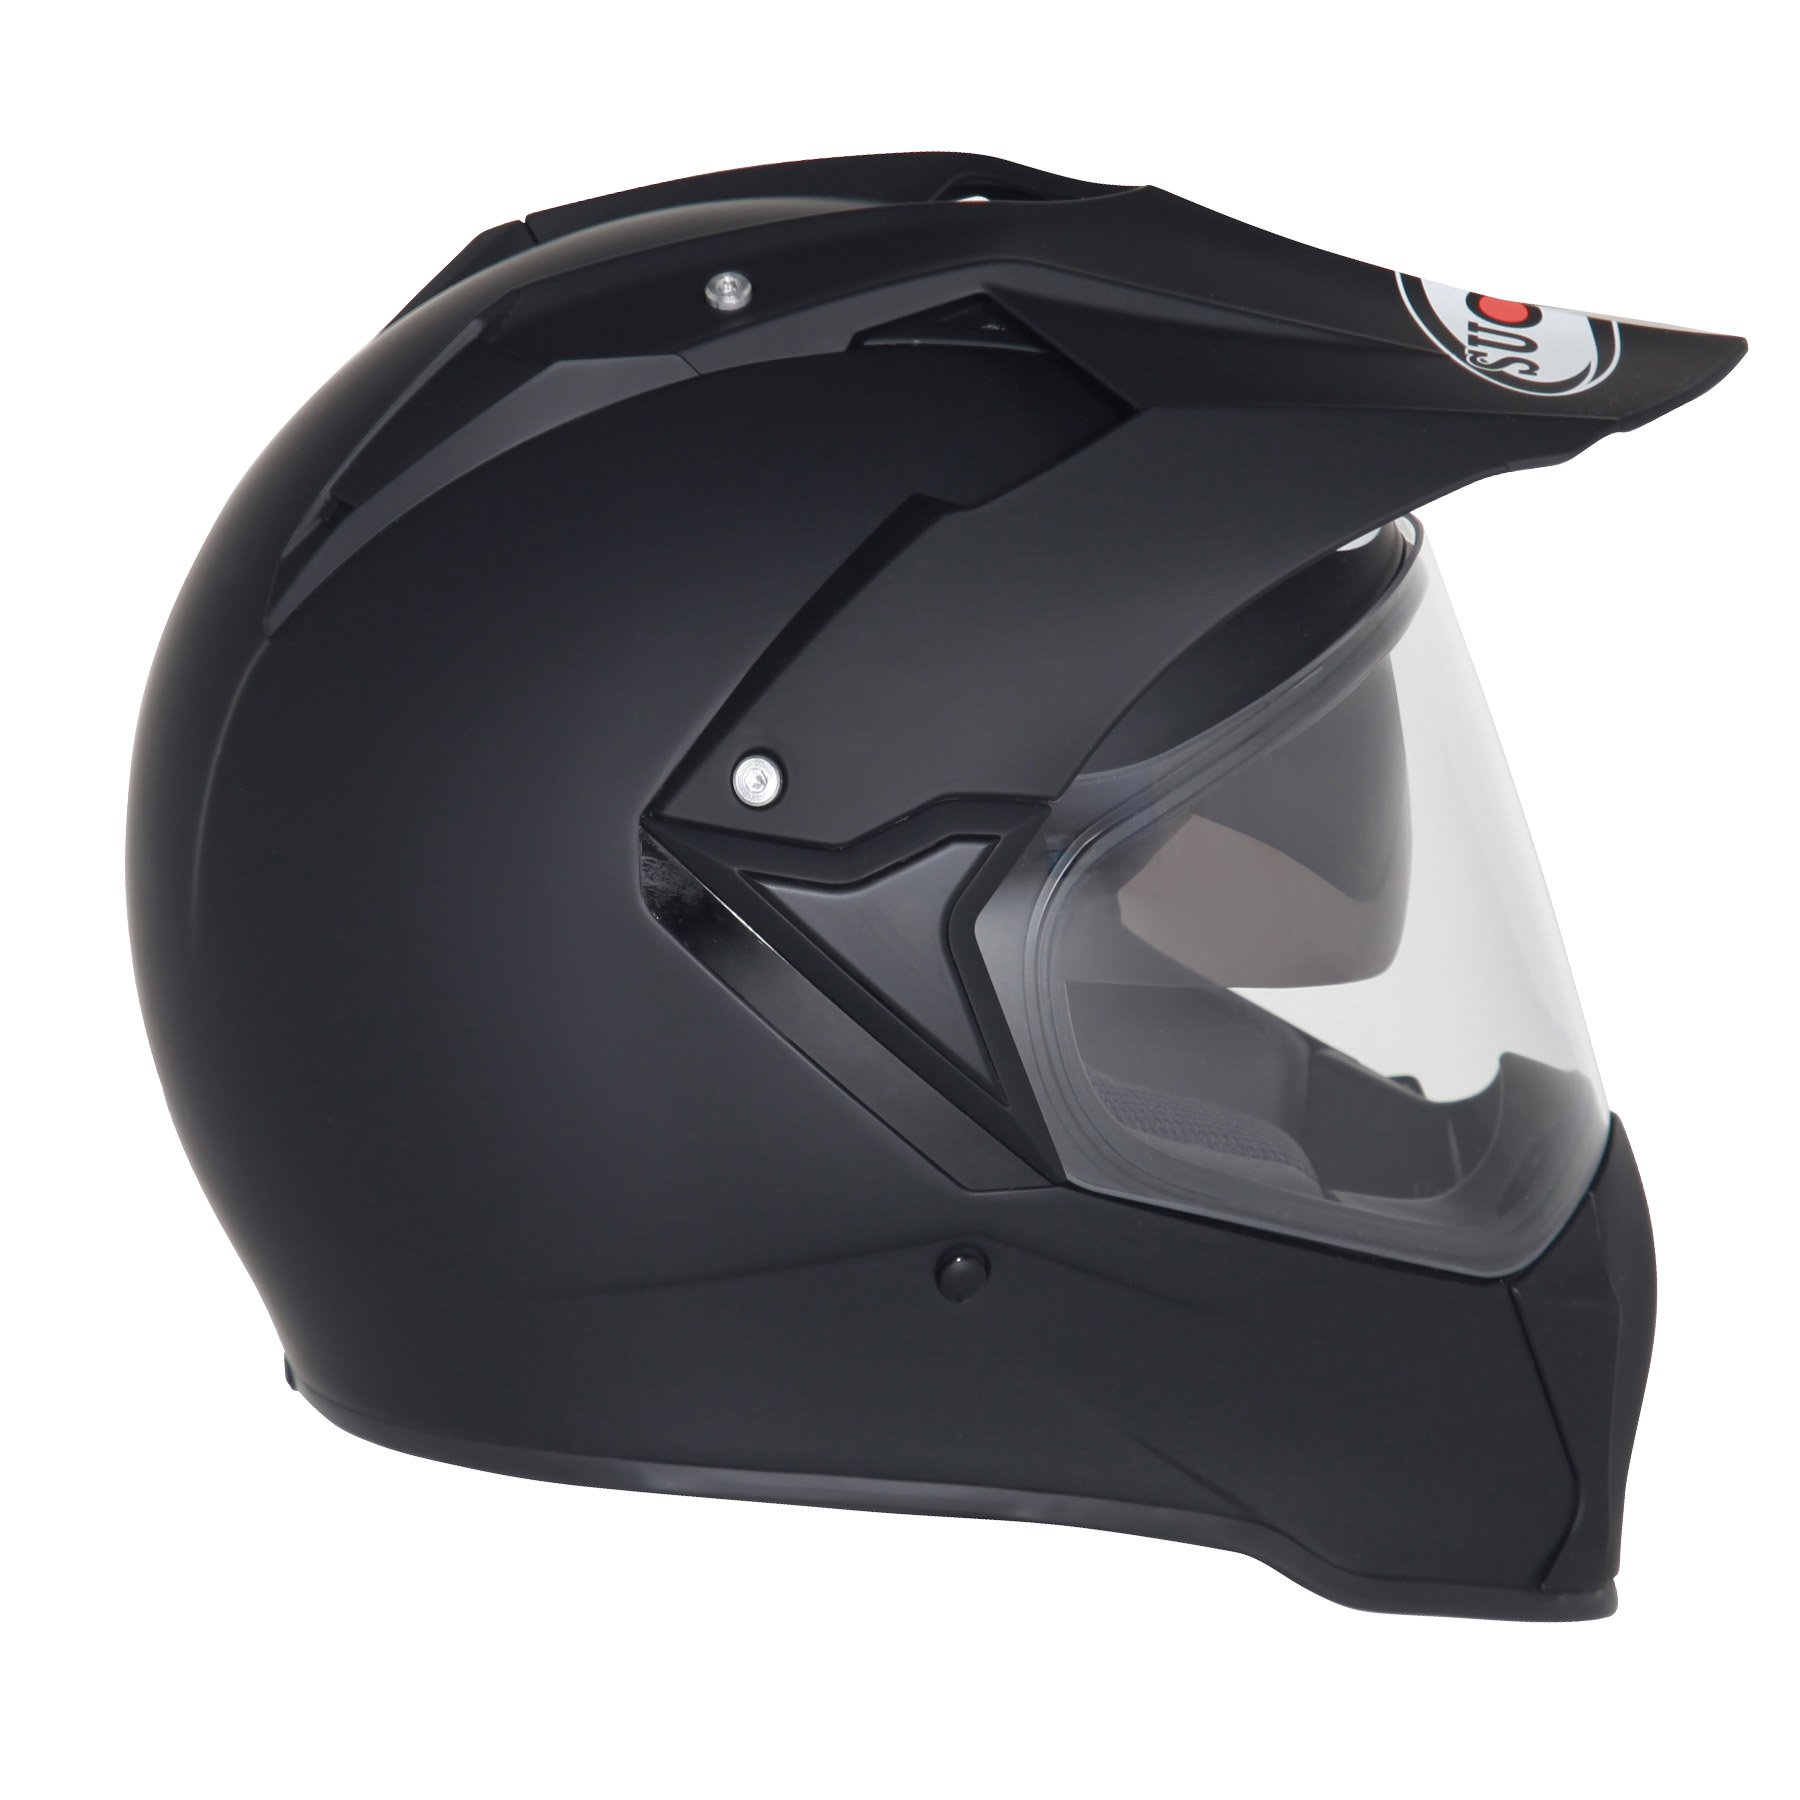 SUOMY - Casco Mx, Nero Opaco, M